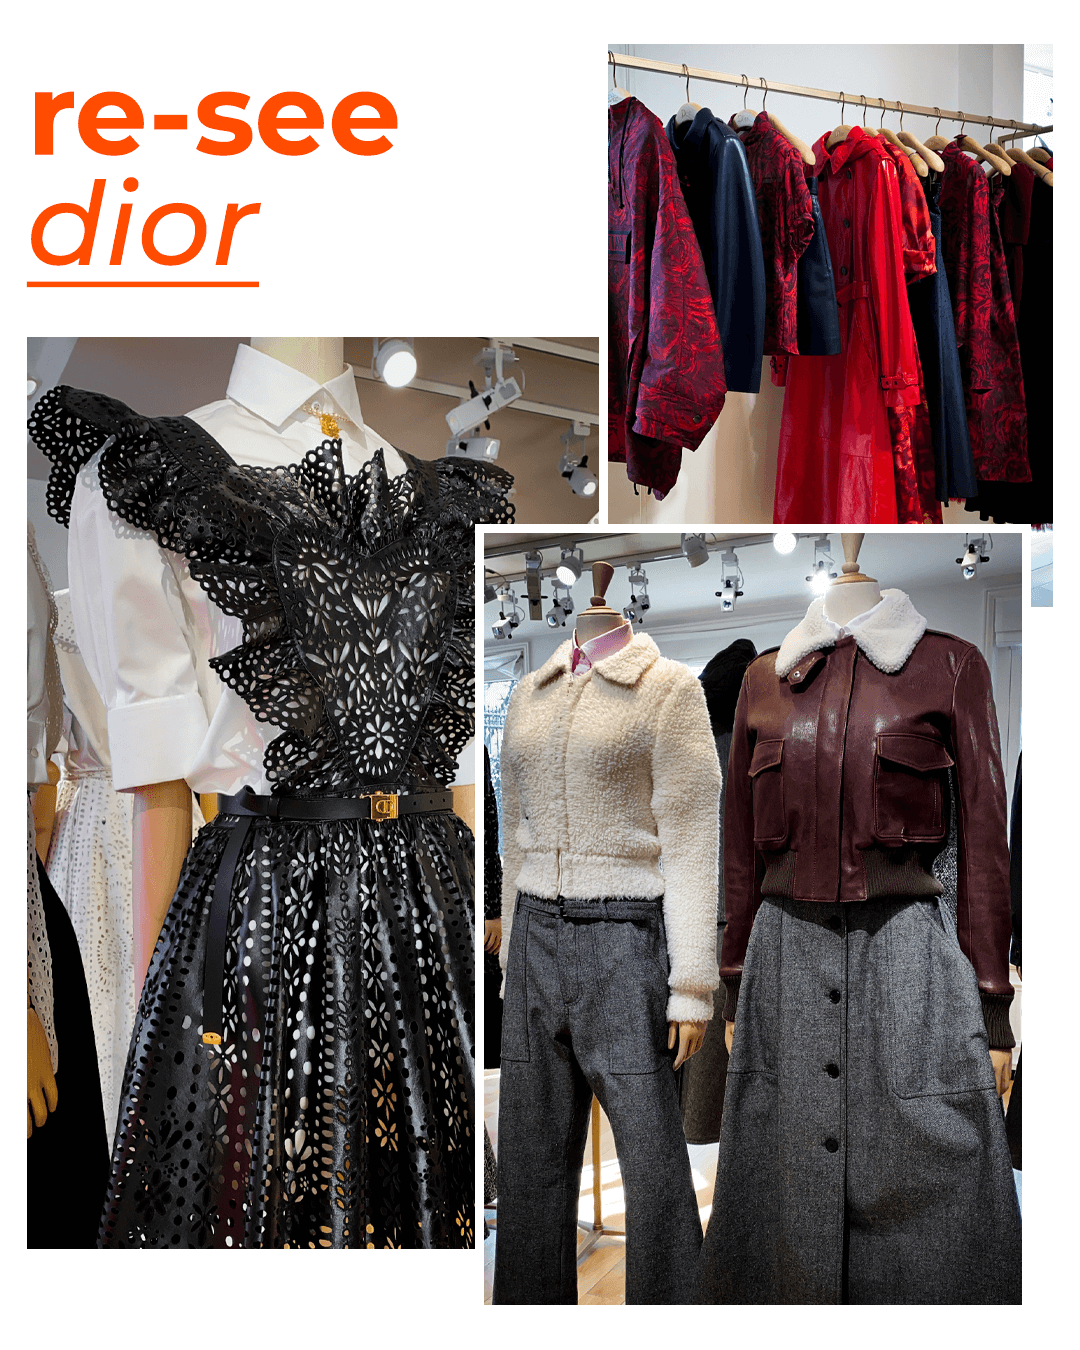 Dior - dior - resee dior - outono - street style - https://stealthelook.com.br